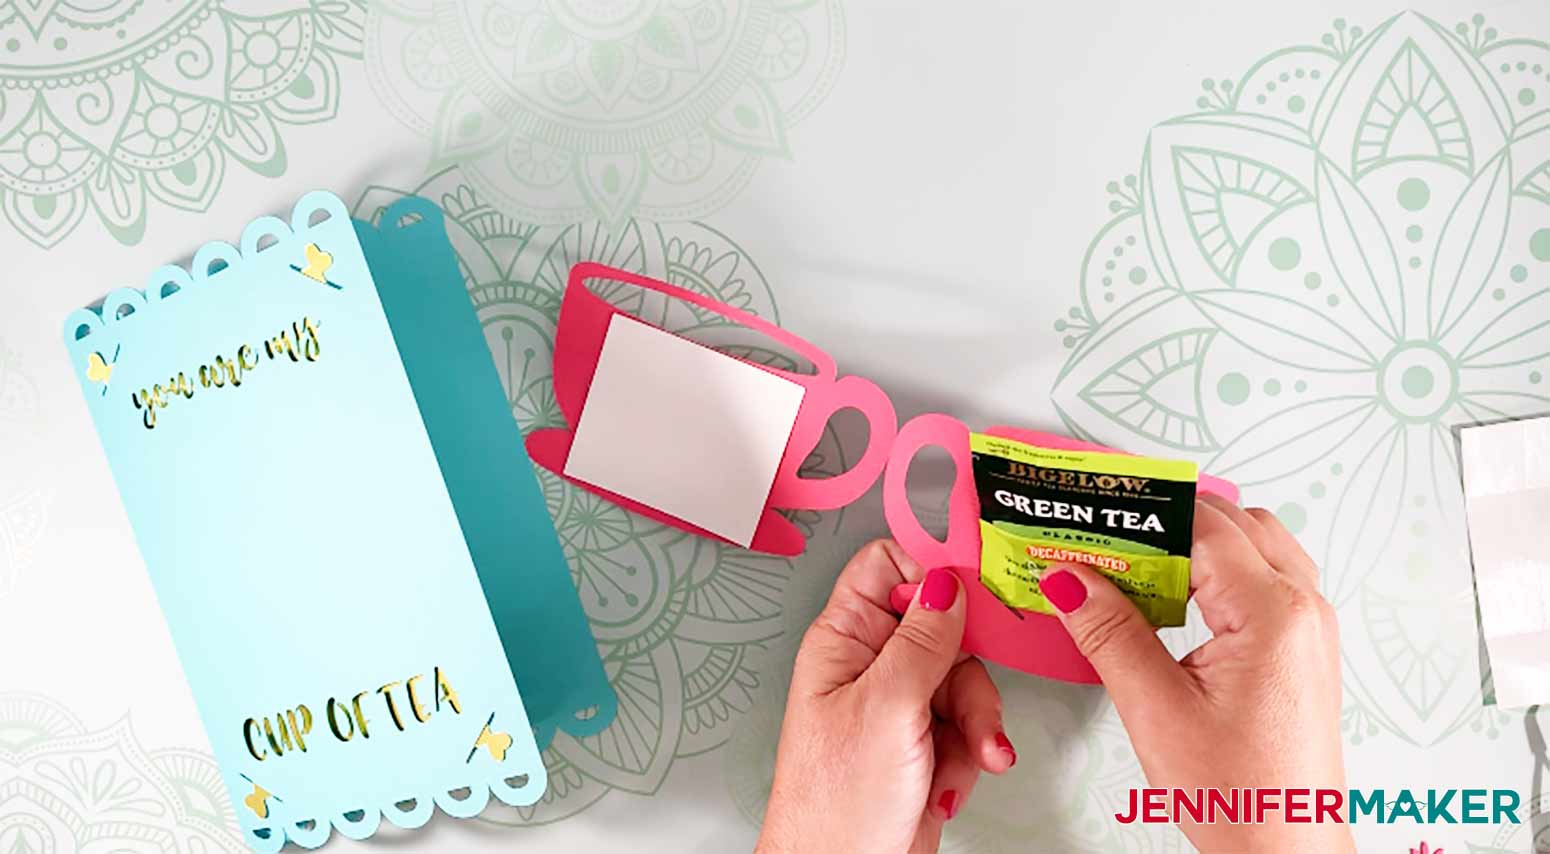 You-Are-My-Cup-Of-Tea-Card-JenniferMaker-Inserting-Tea-Bag